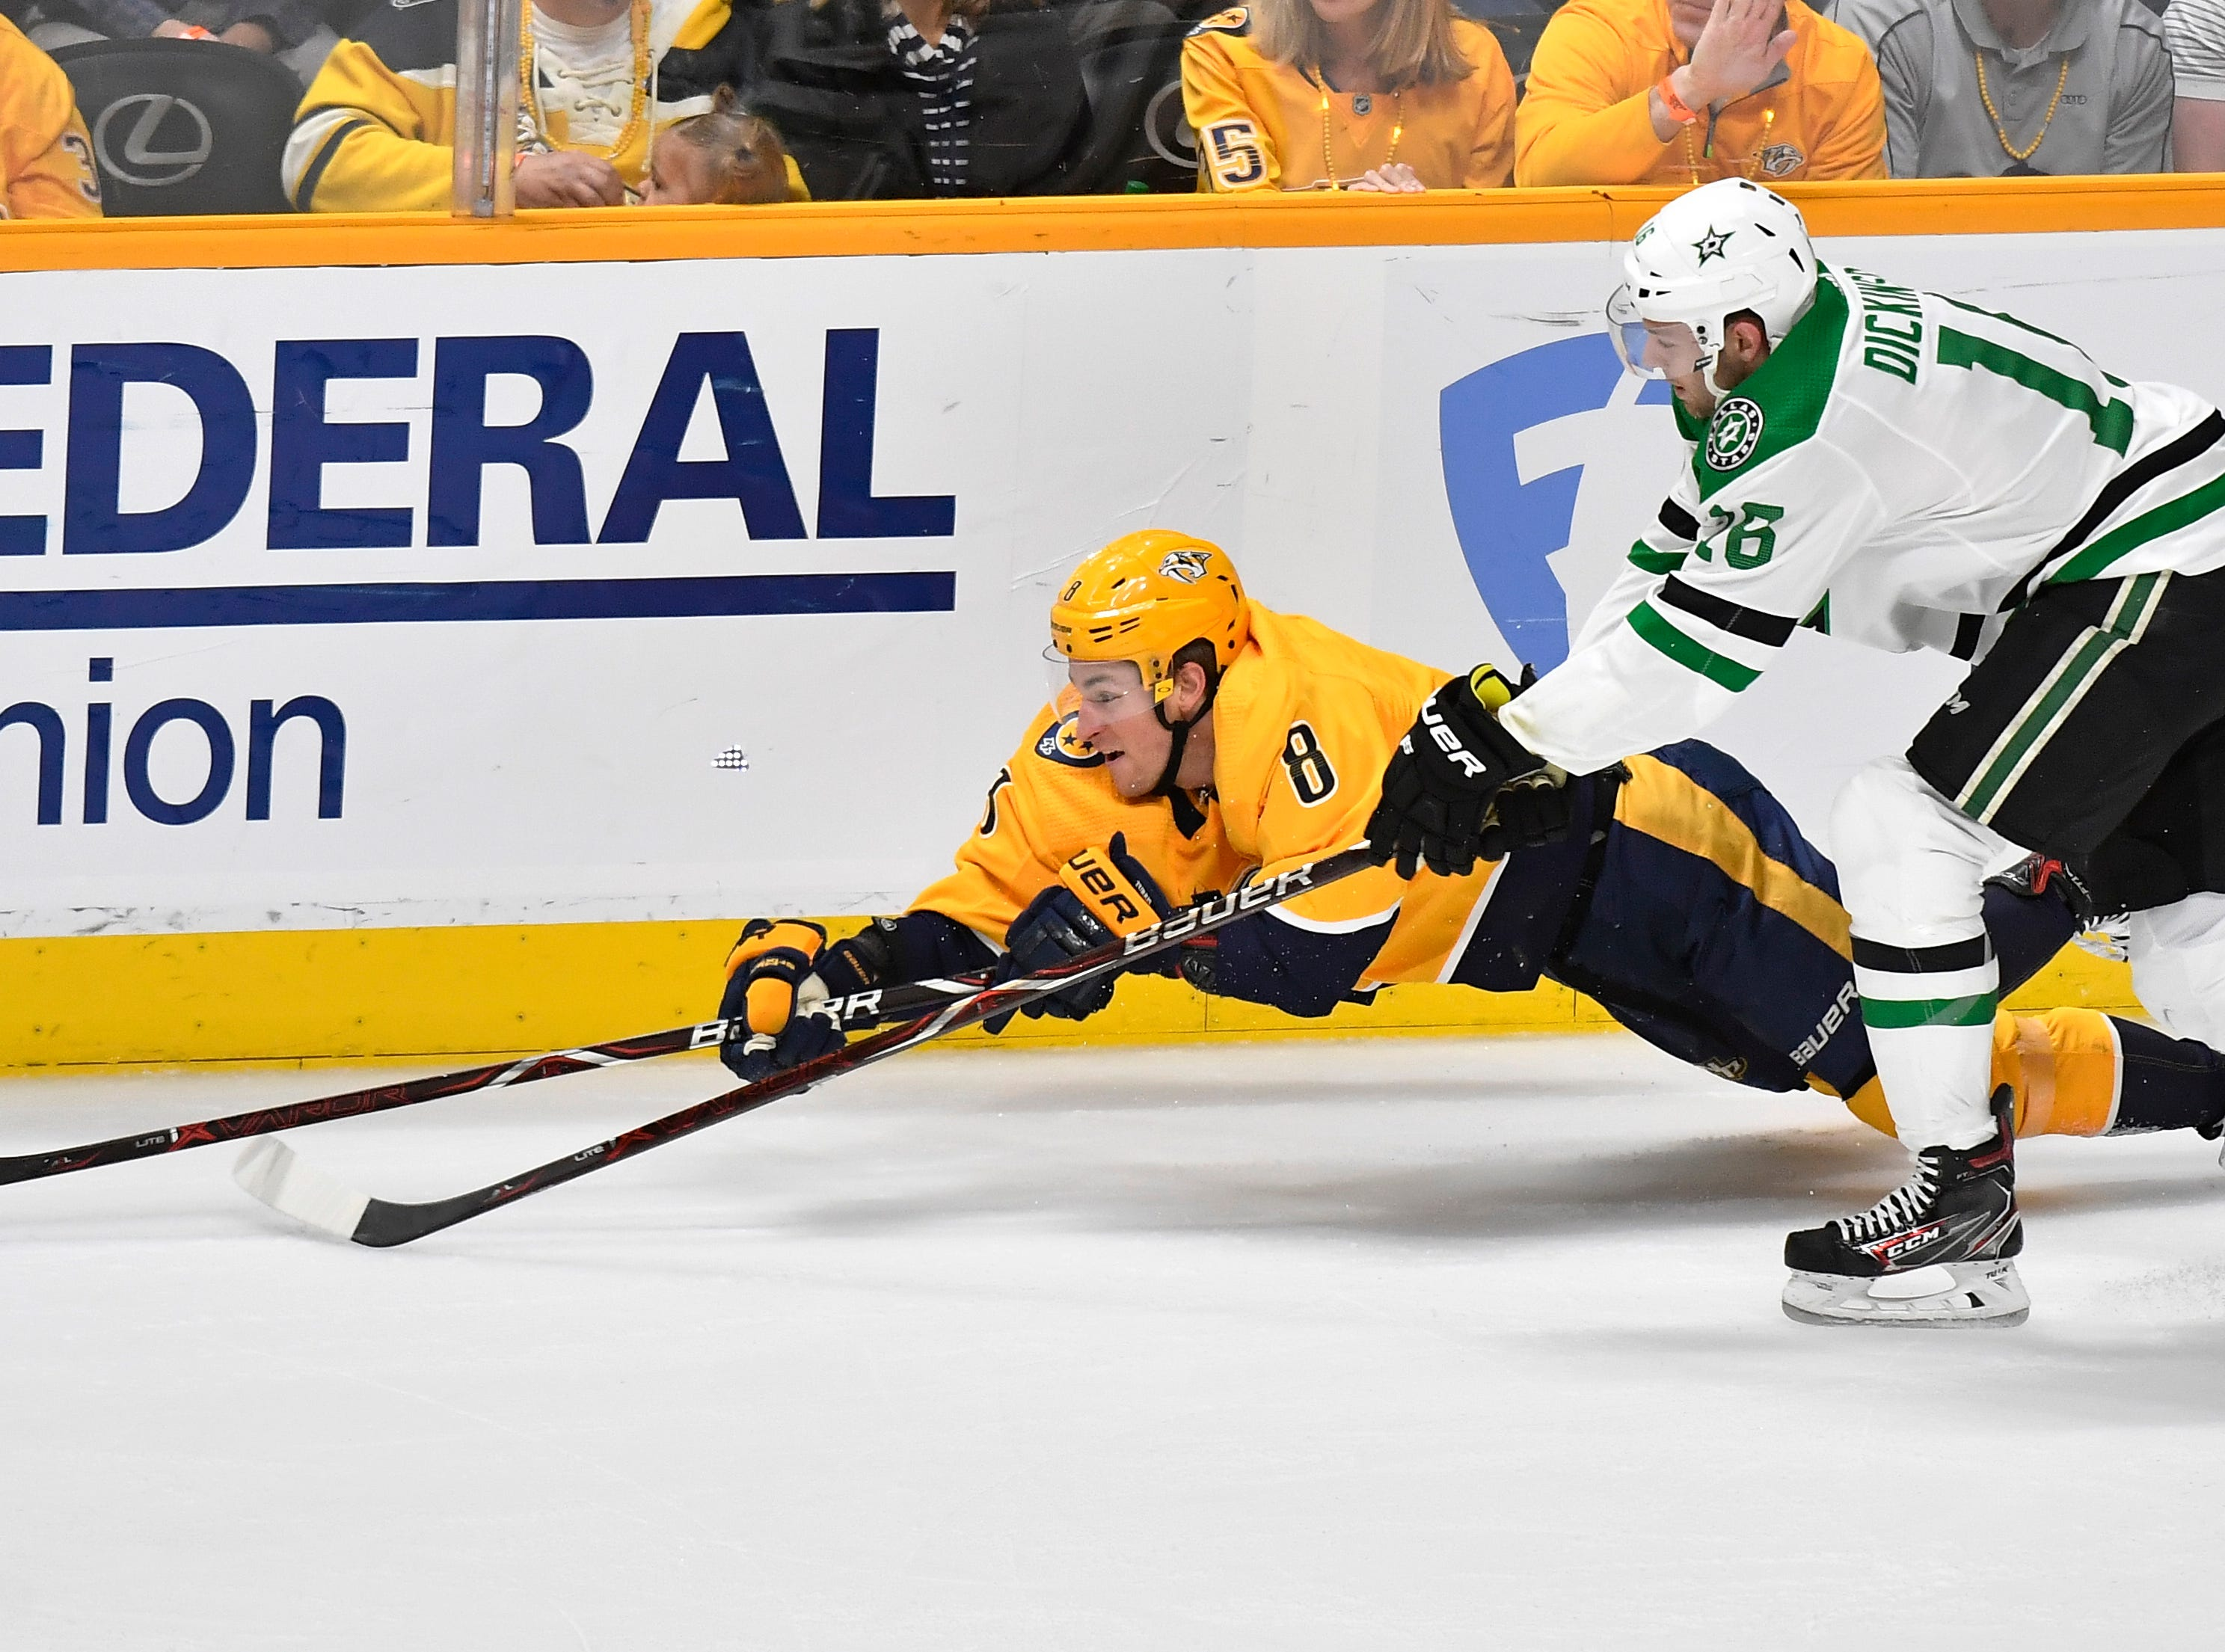 Nashville Predators center Kyle Turris (8) and Dallas Stars center Jason Dickinson (16) battle for the puck during the first period of the divisional semifinal game at Bridgestone Arena in Nashville, Tenn., Saturday, April 13, 2019.